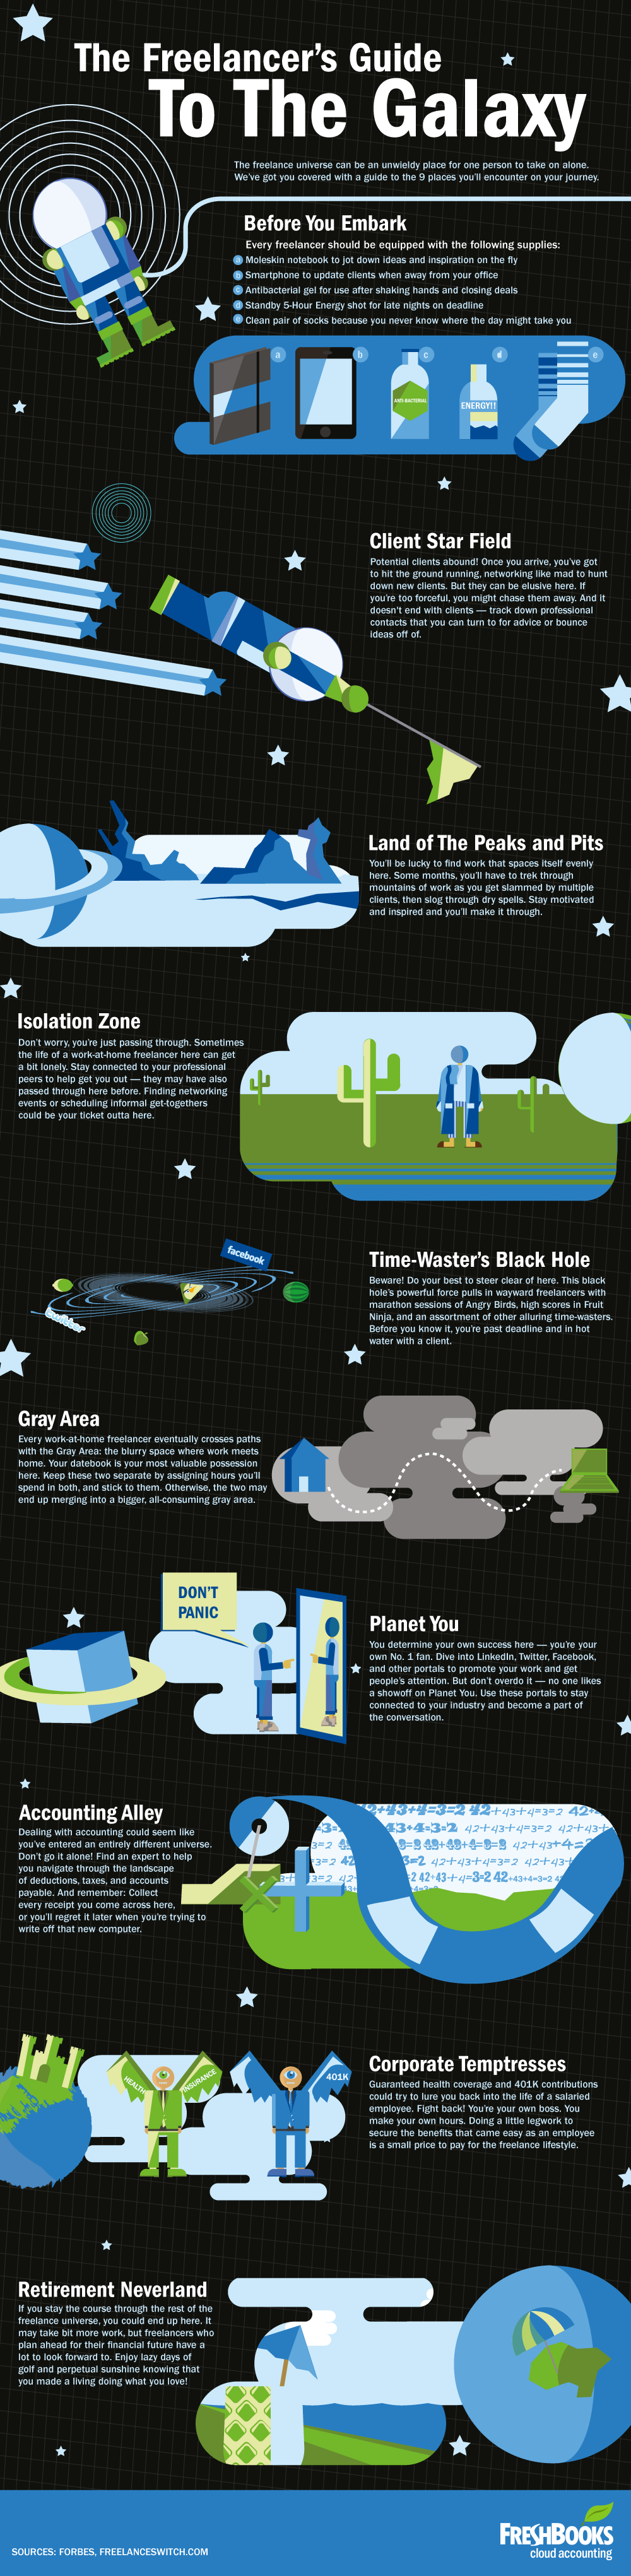 Freelancer's Guide to the Galaxy-INFOGRAPHIC